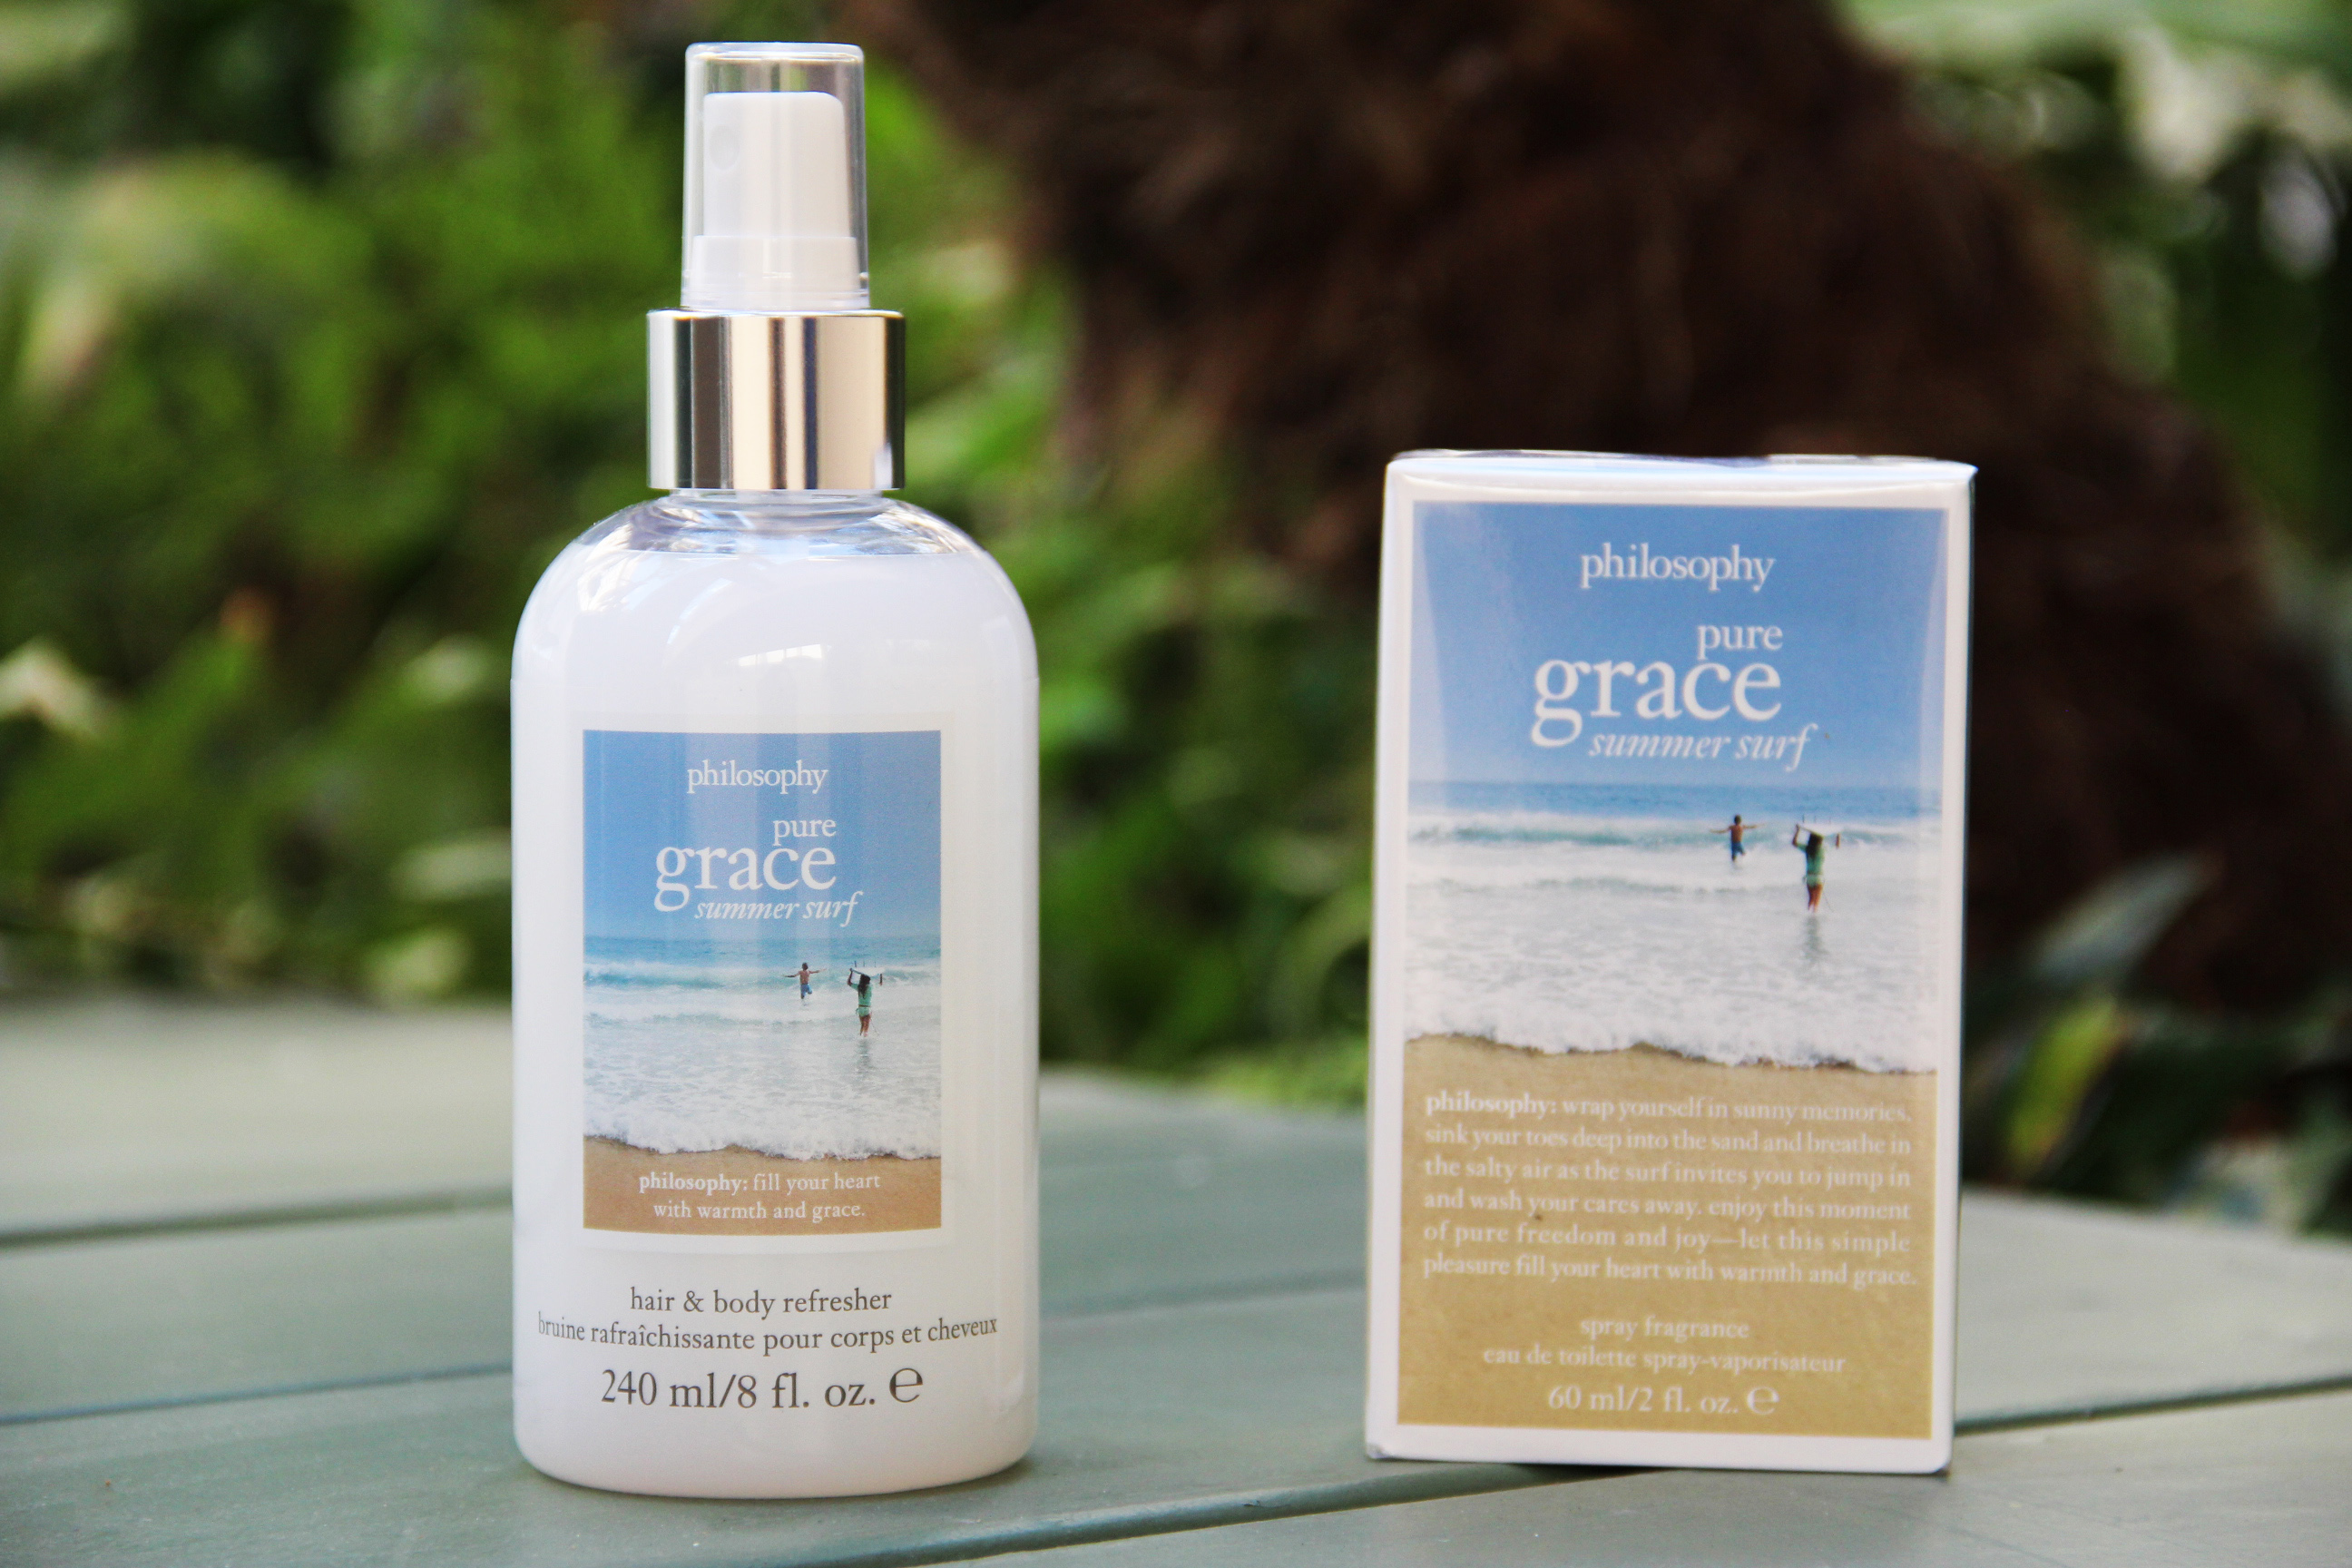 Philosophy Pure Grace Summer Surf Beauty